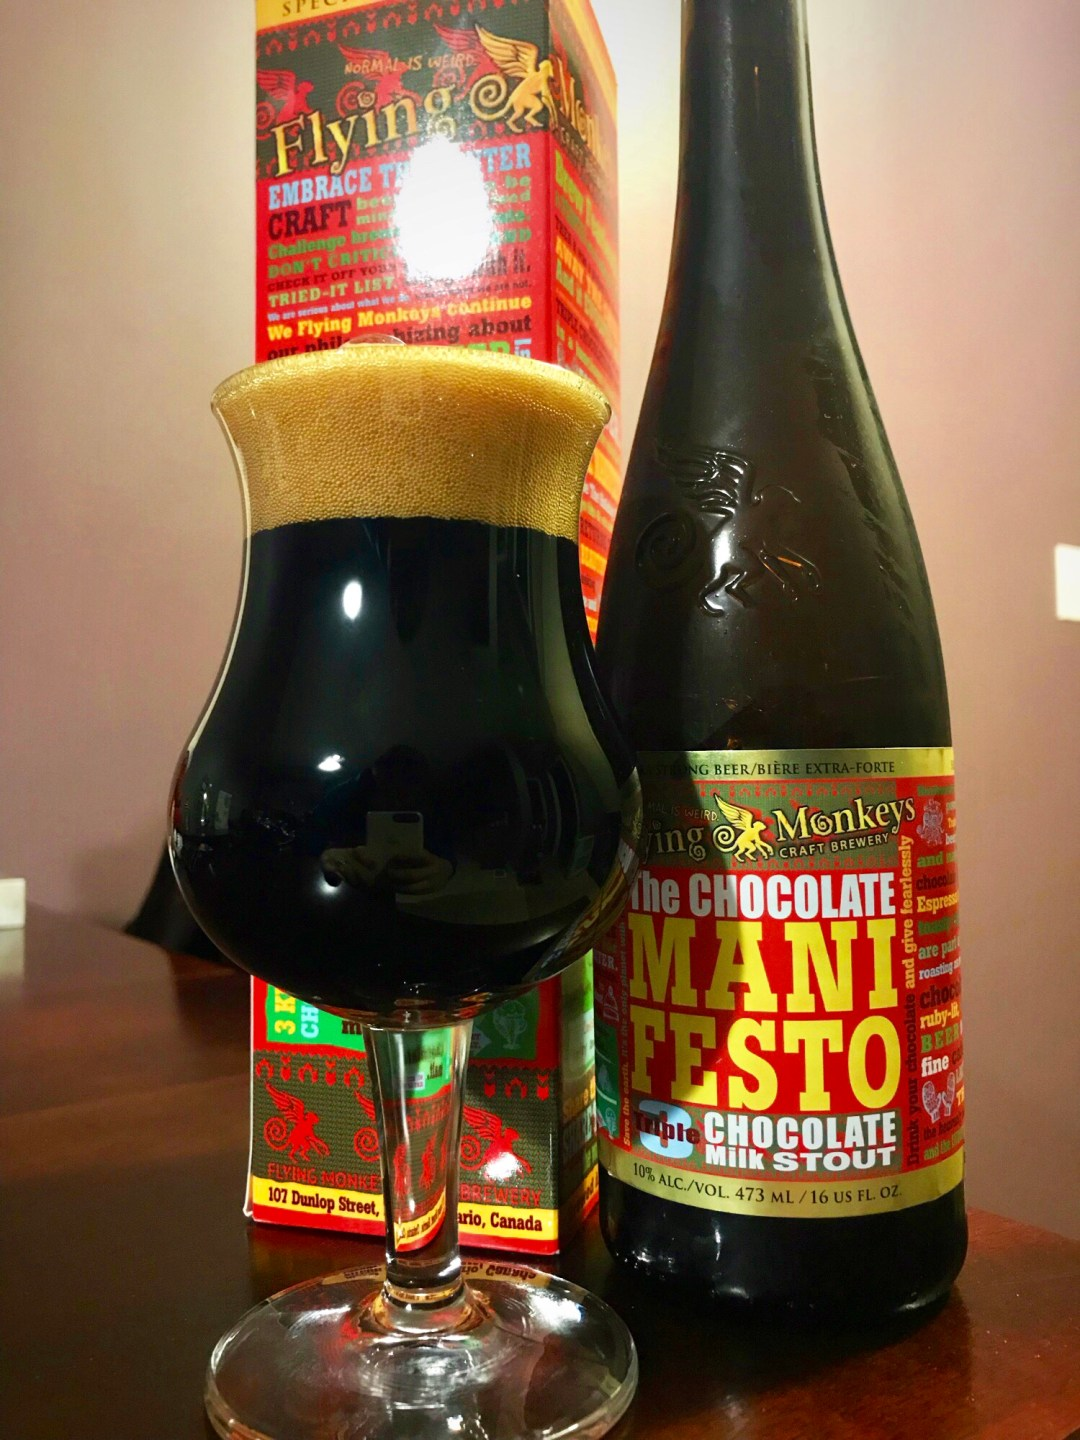 The Chocolate Manifesto is one of the more unusual and delightful Flying Monkeys creations. With three different types of chocolate incorporated in the brewing process, this is definitely a decadent product, despite the hefty 10% ABV.